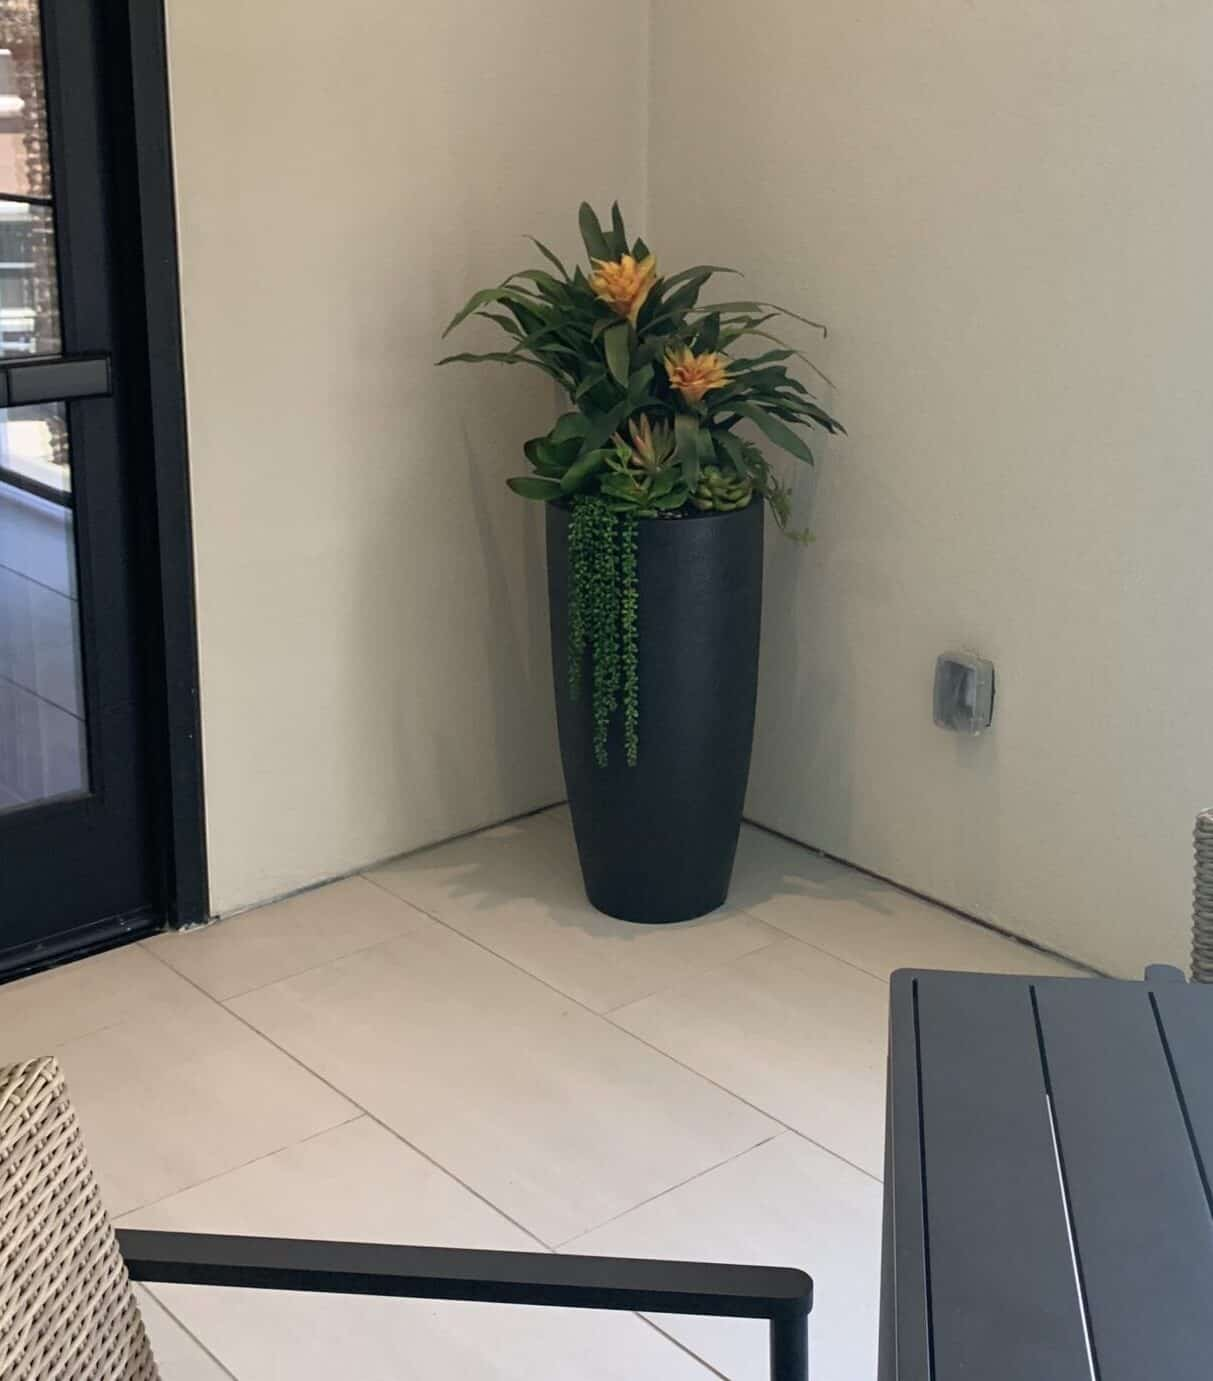 Artificial plants in a tall planter